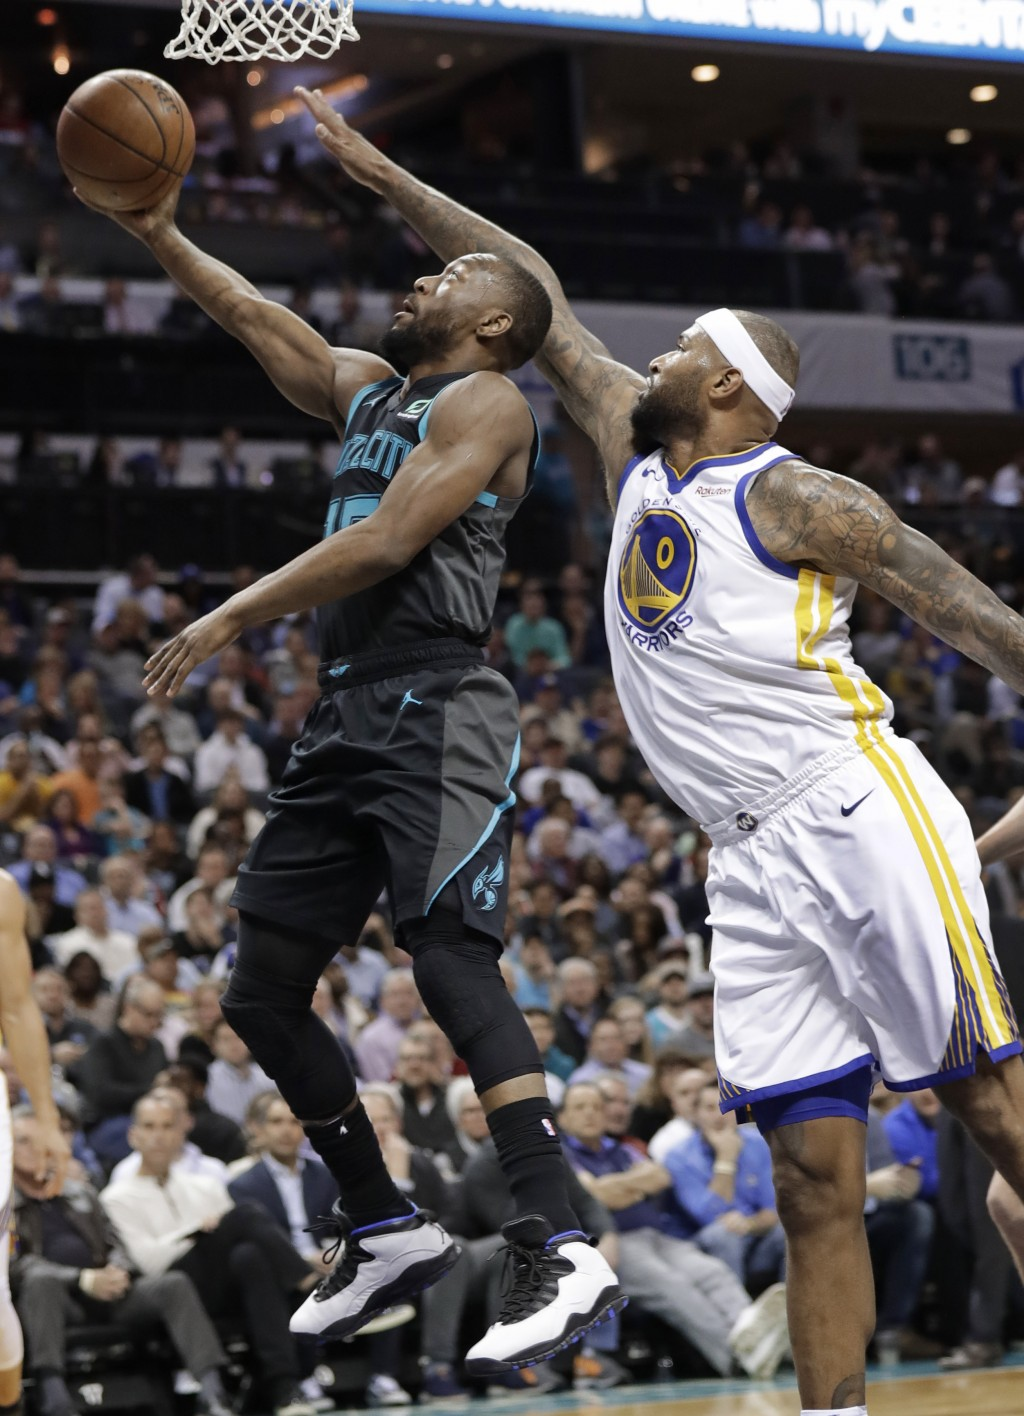 Charlotte Hornets' Kemba Walker (15) drives past Golden State Warriors' DeMarcus Cousins (0) during the first half of an NBA basketball game in Charlo